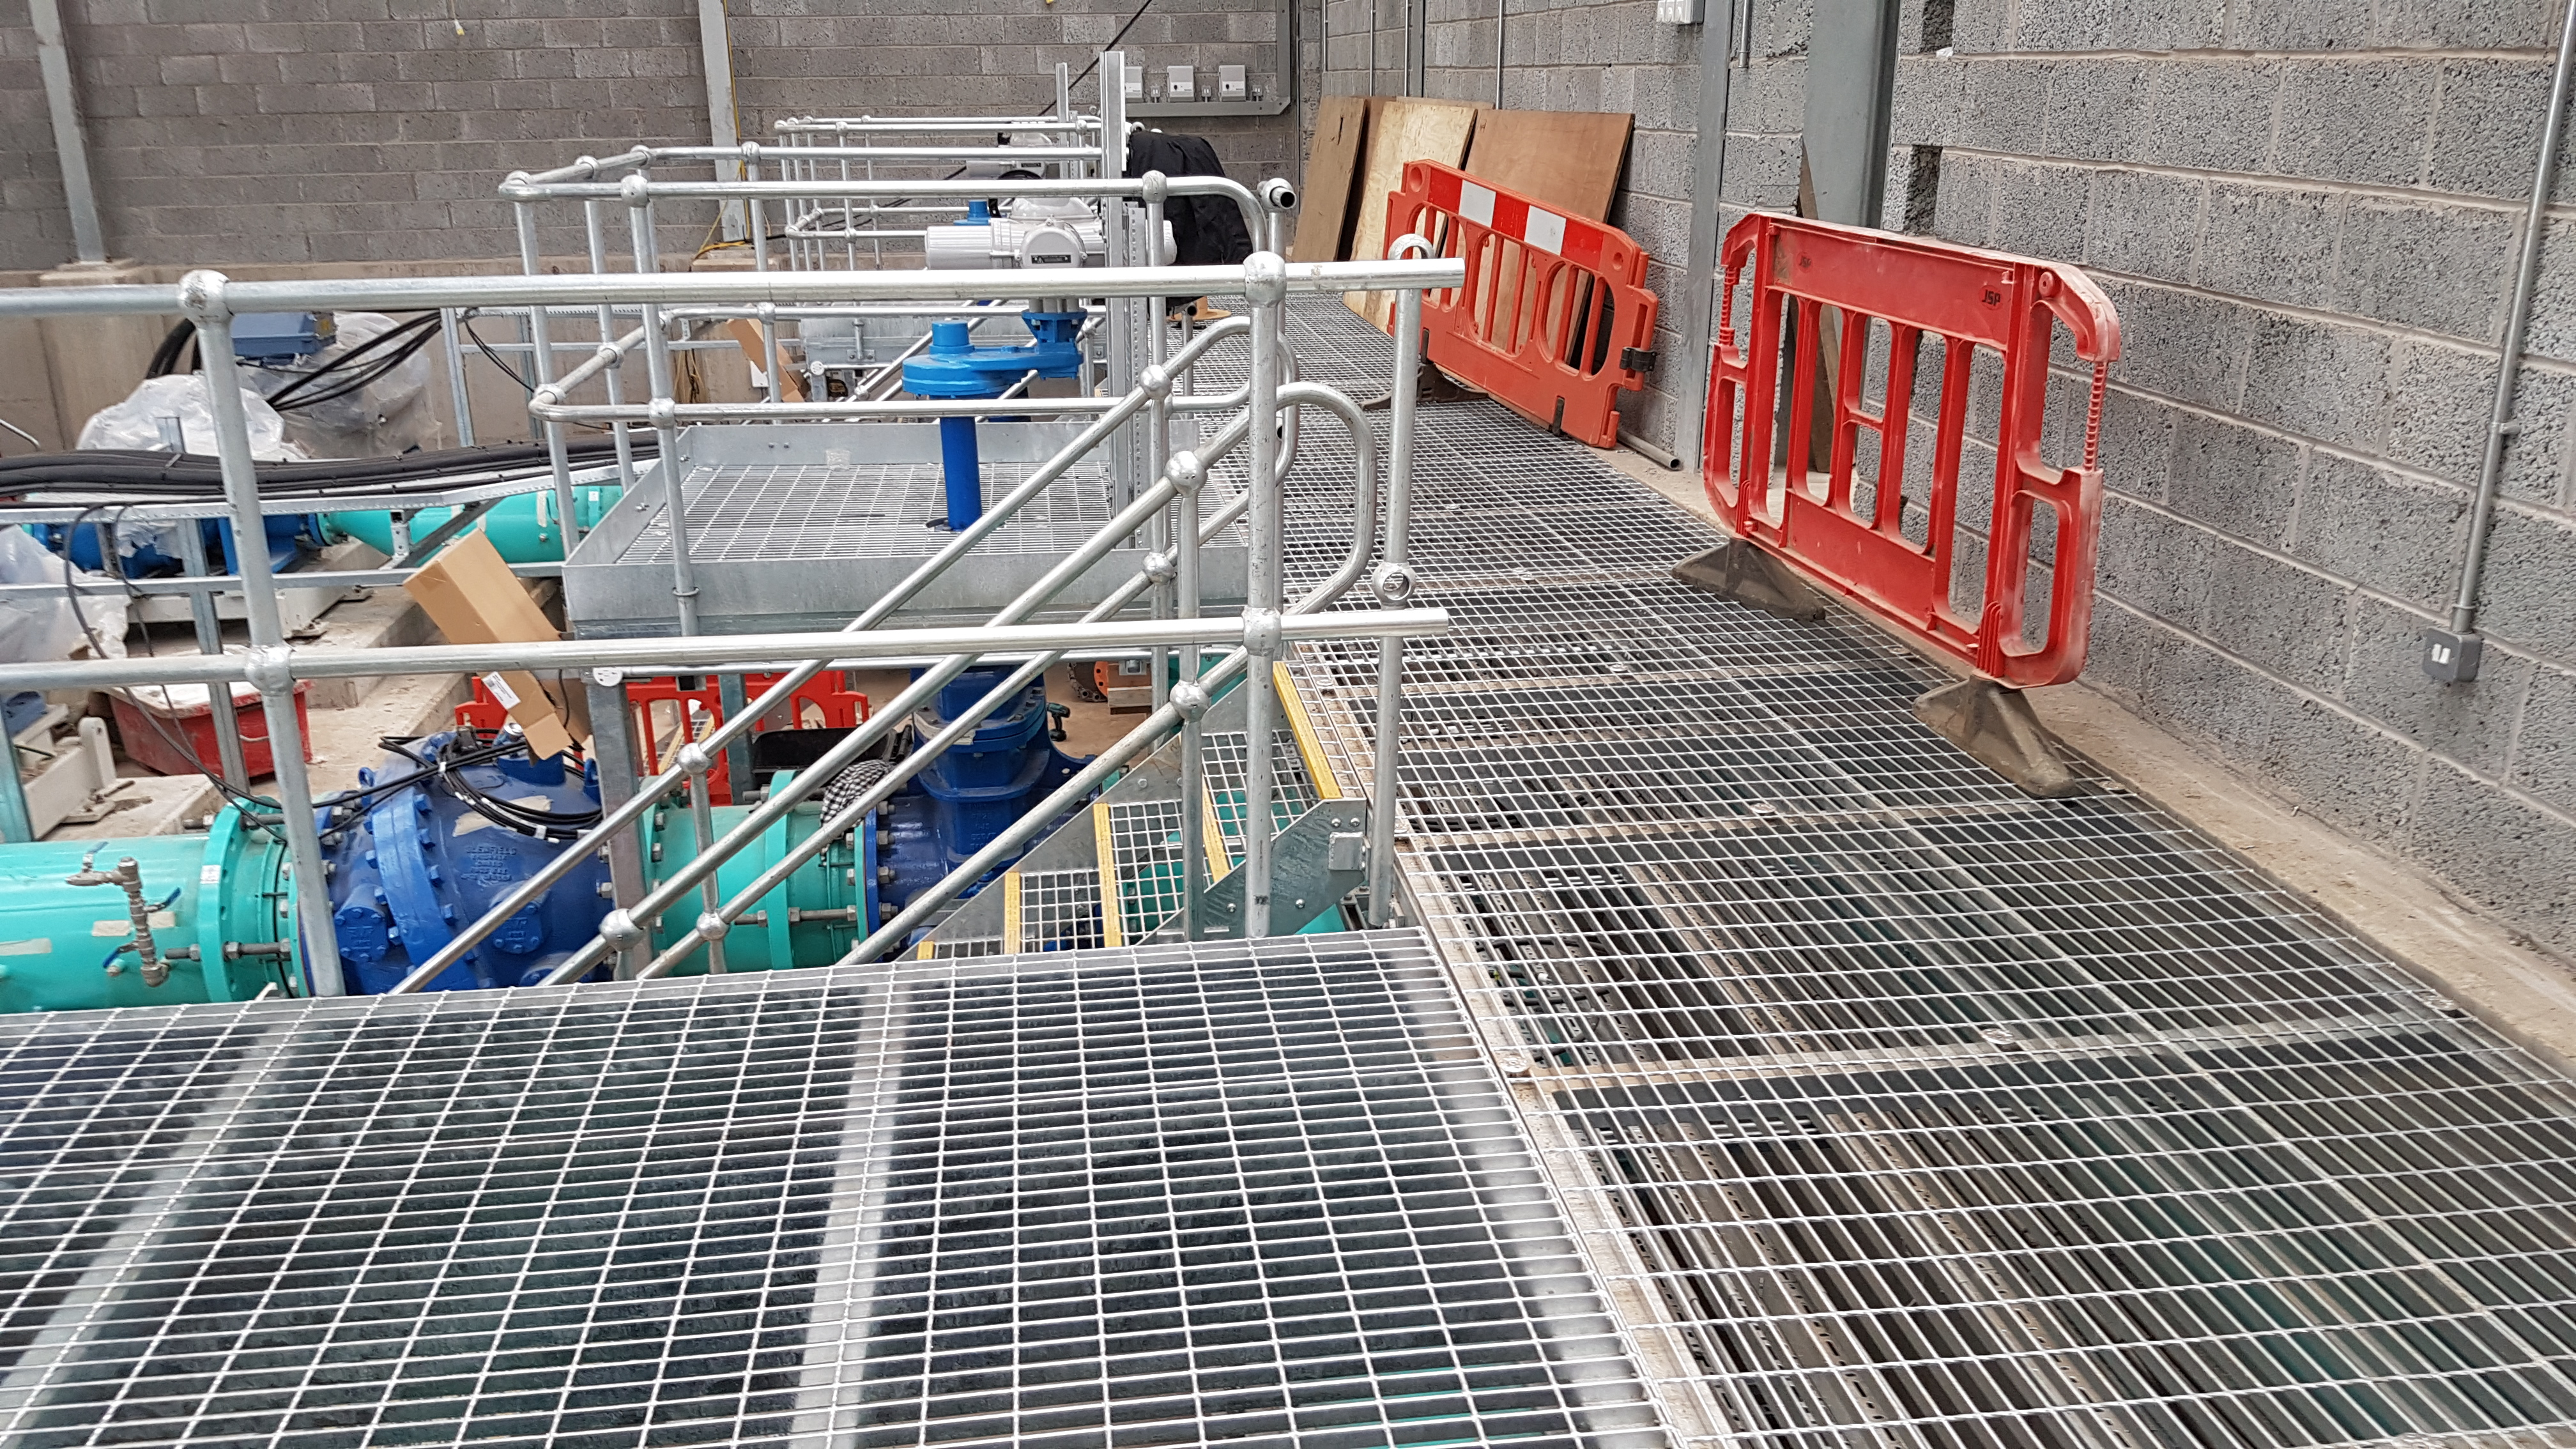 Walkway and Handrail in a Construction Site